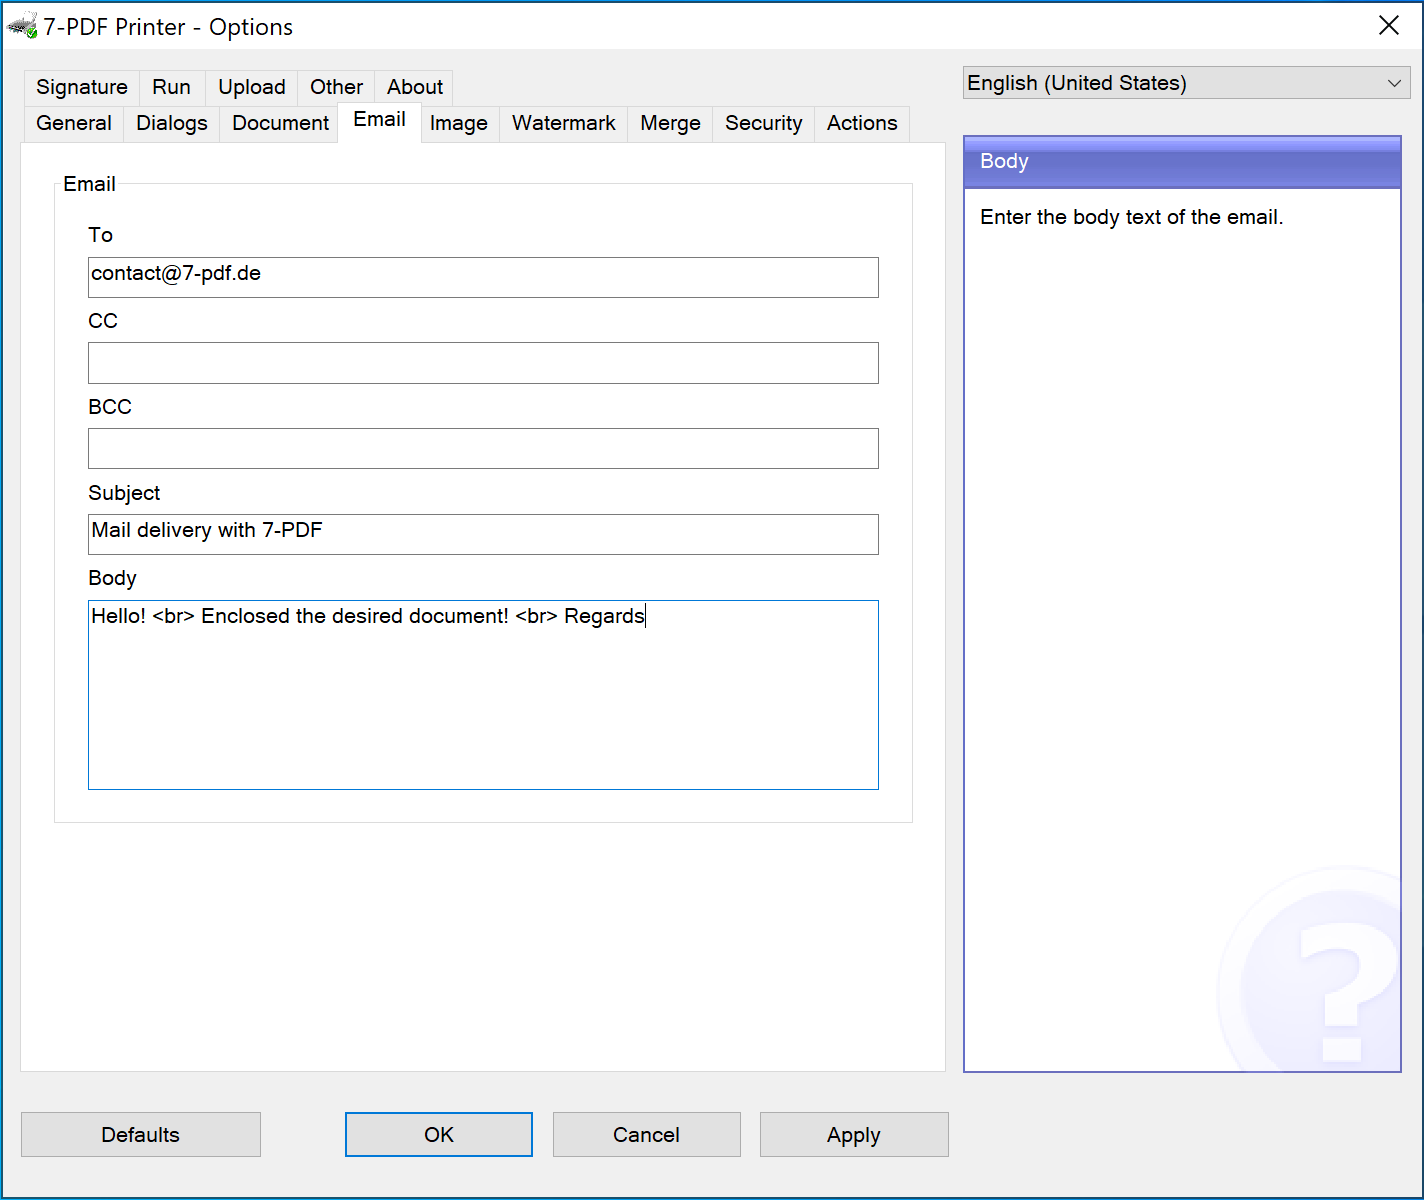 Fixed configuration mail dispatch in the options dialog of the PDF printer